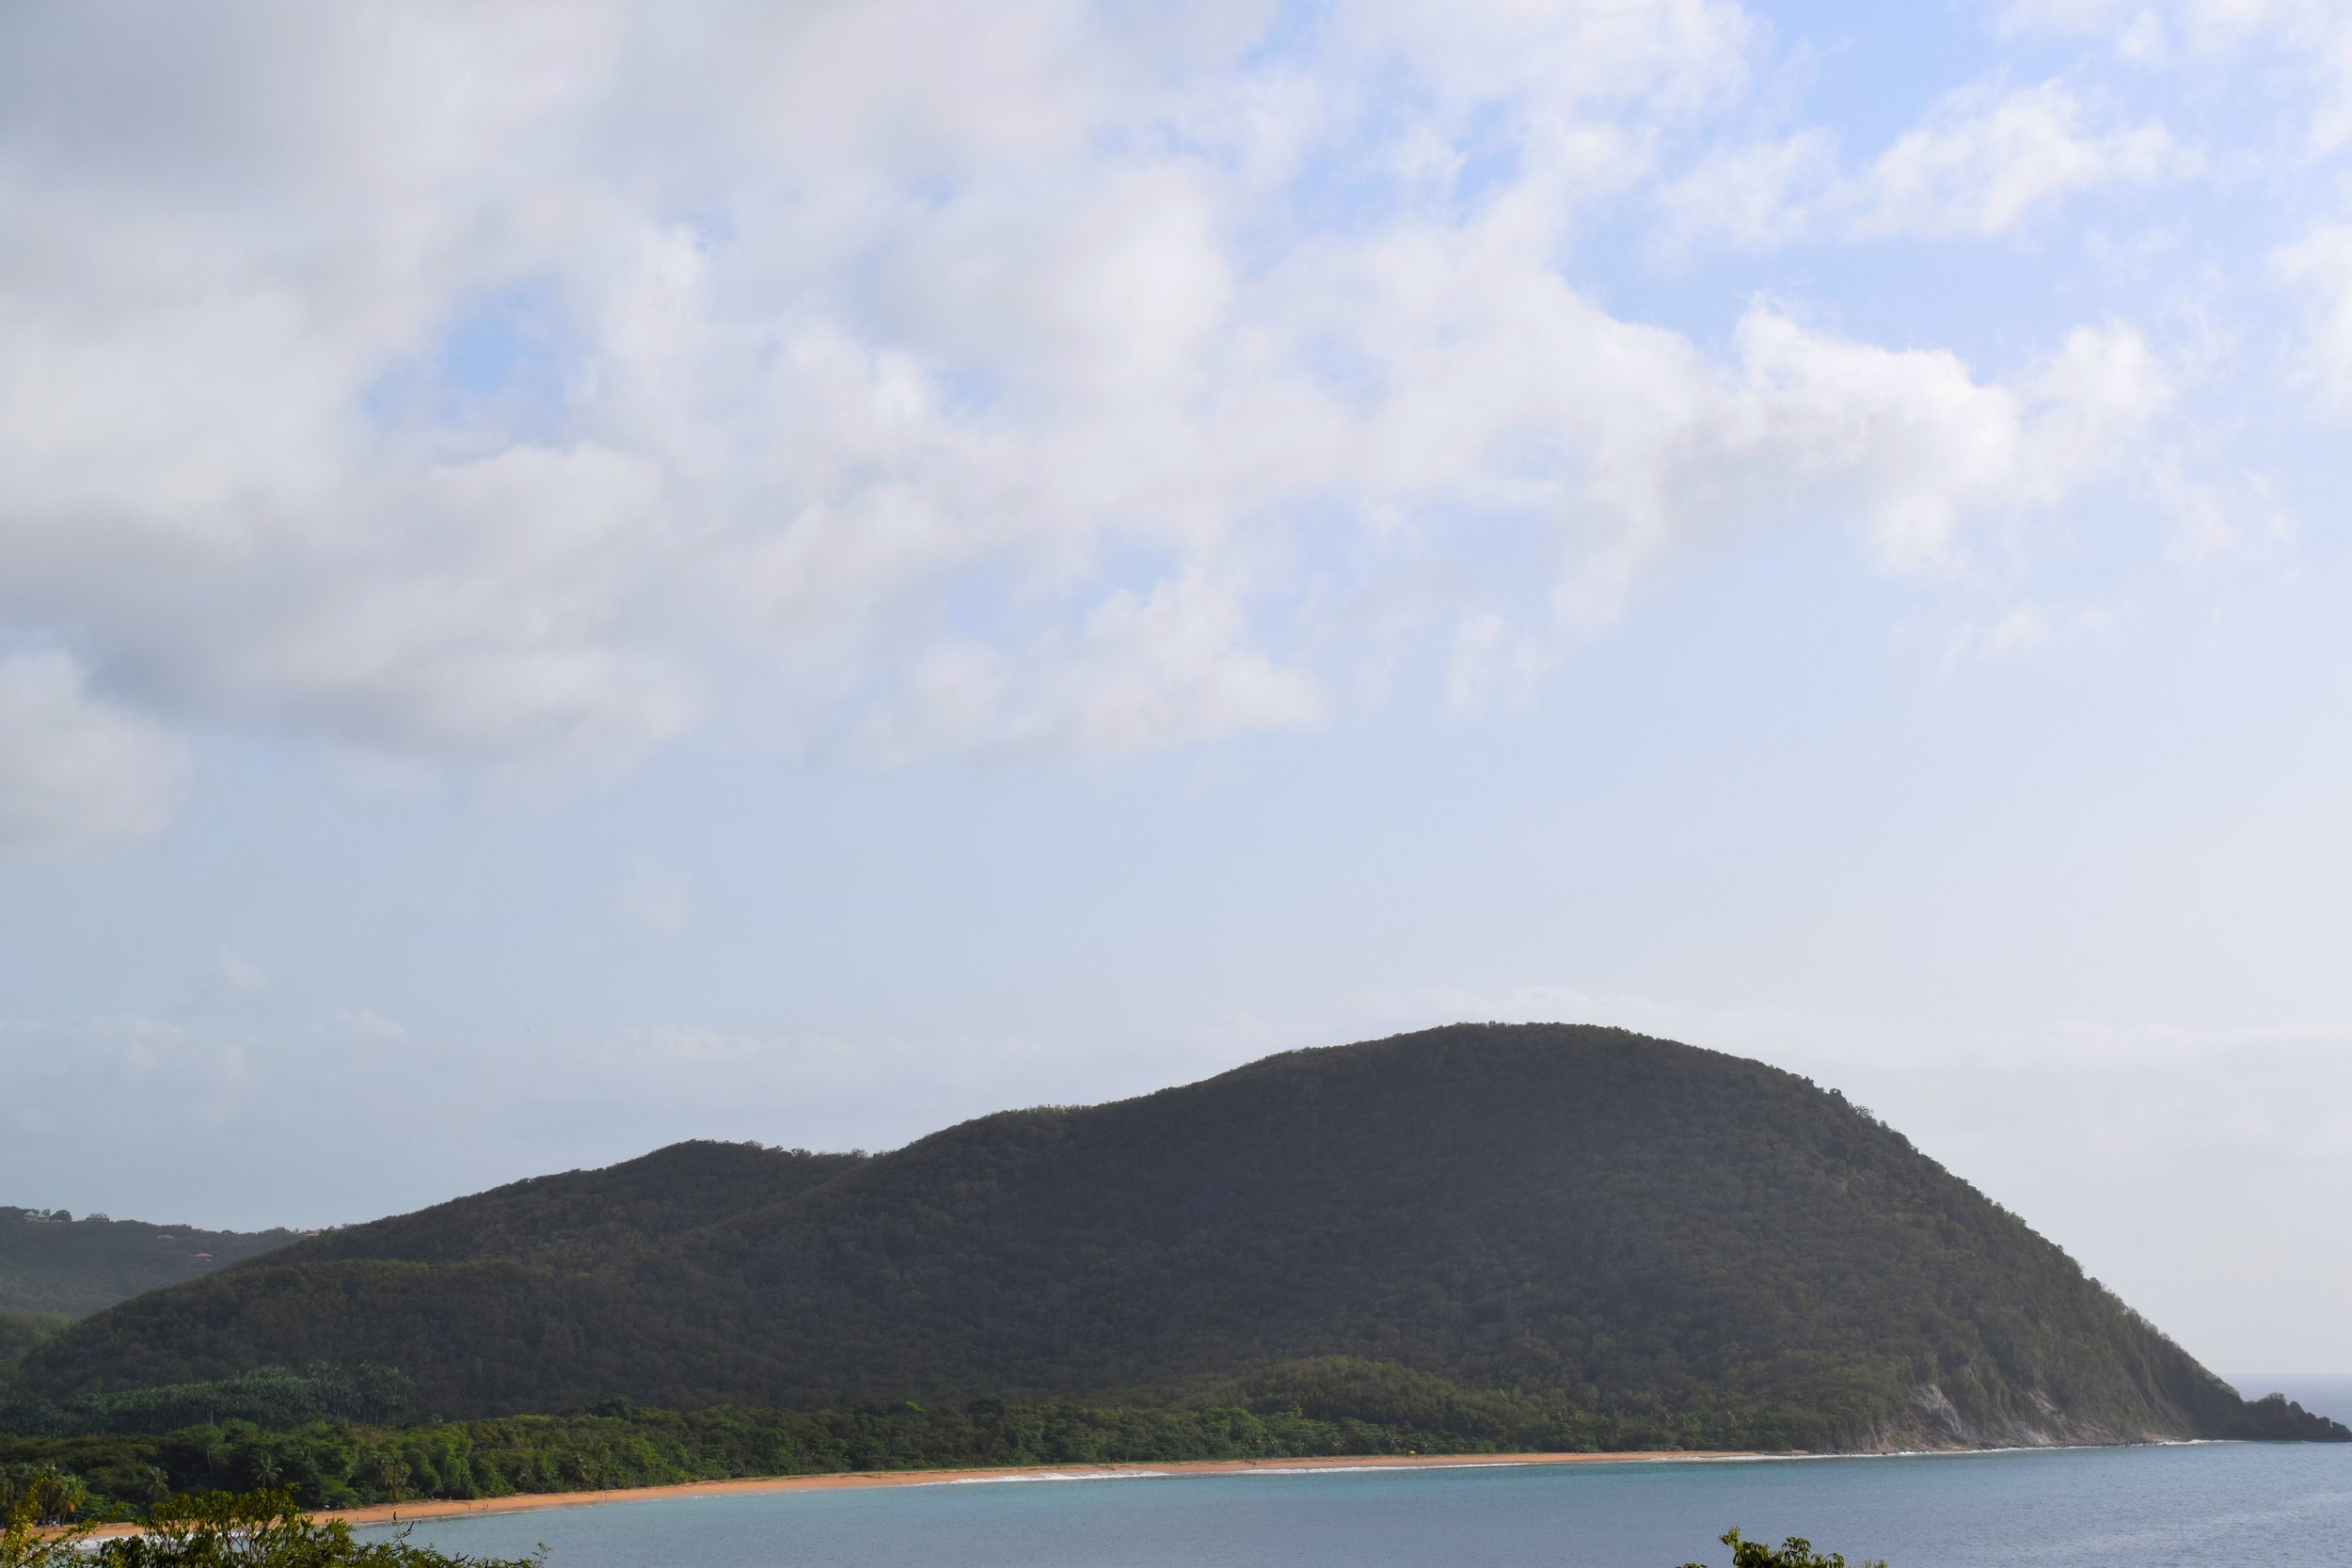 Views from Point de Vue de Gadet in Guadeloupe.